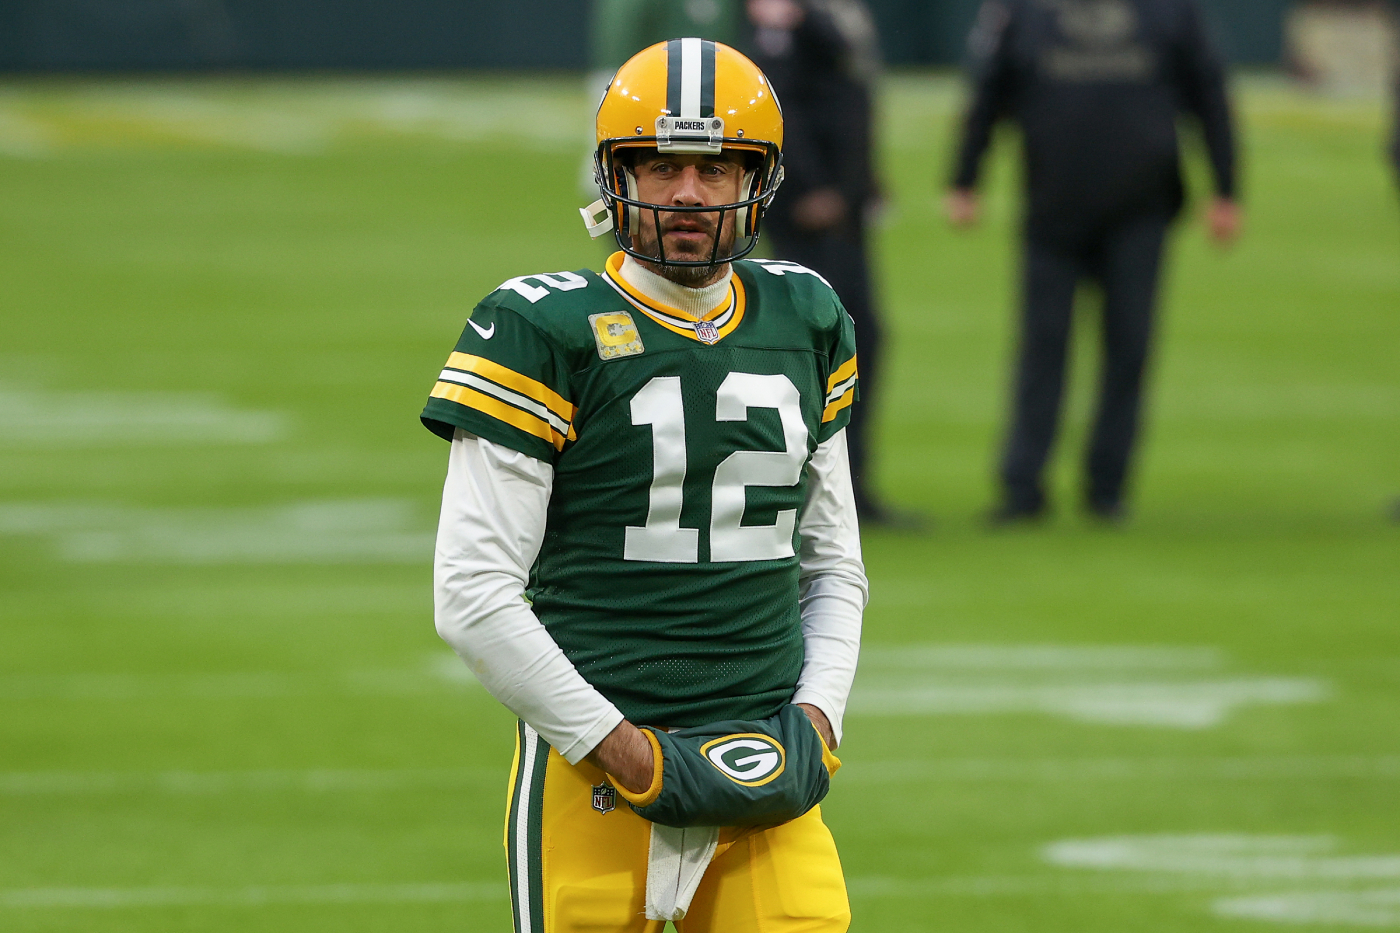 After the Green Bay Packers' recent loss, Marquez Valdes-Scantling received death threats. Aaron Rodgers now has a strong message.